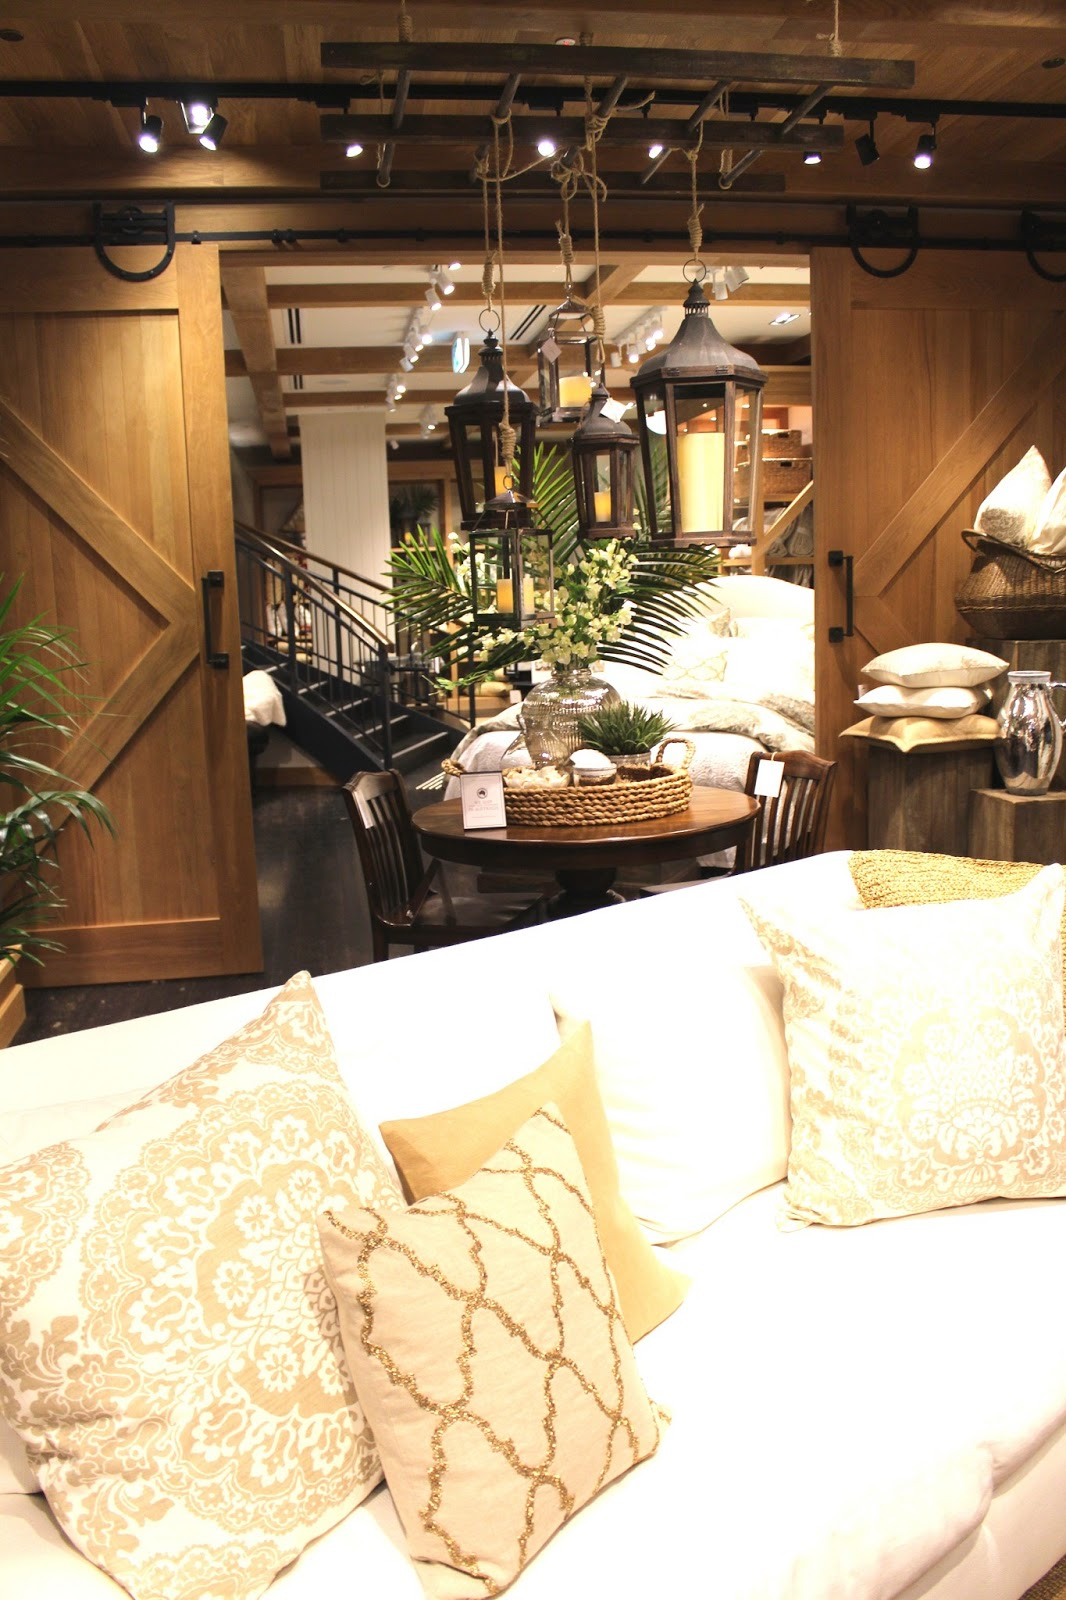 Pottery Barn And Friends Come To Town Desire Empire